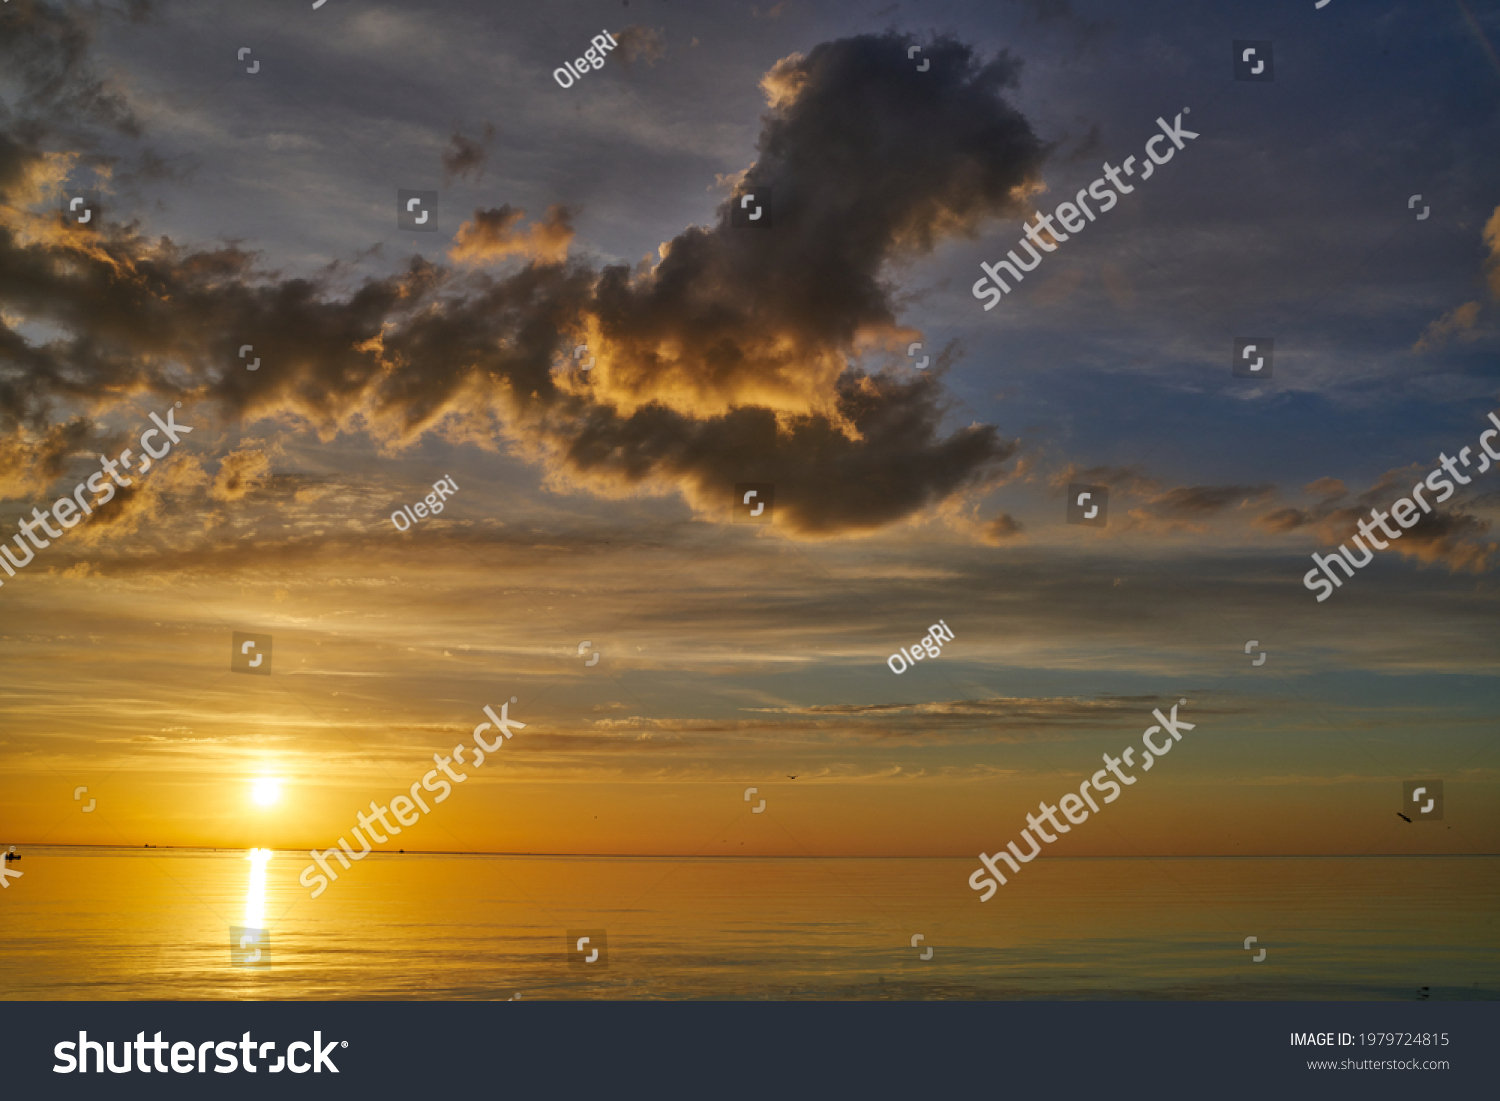 Evening sky with dramatic clouds over the sea. Dramatic sunset over the sea. #1979724815